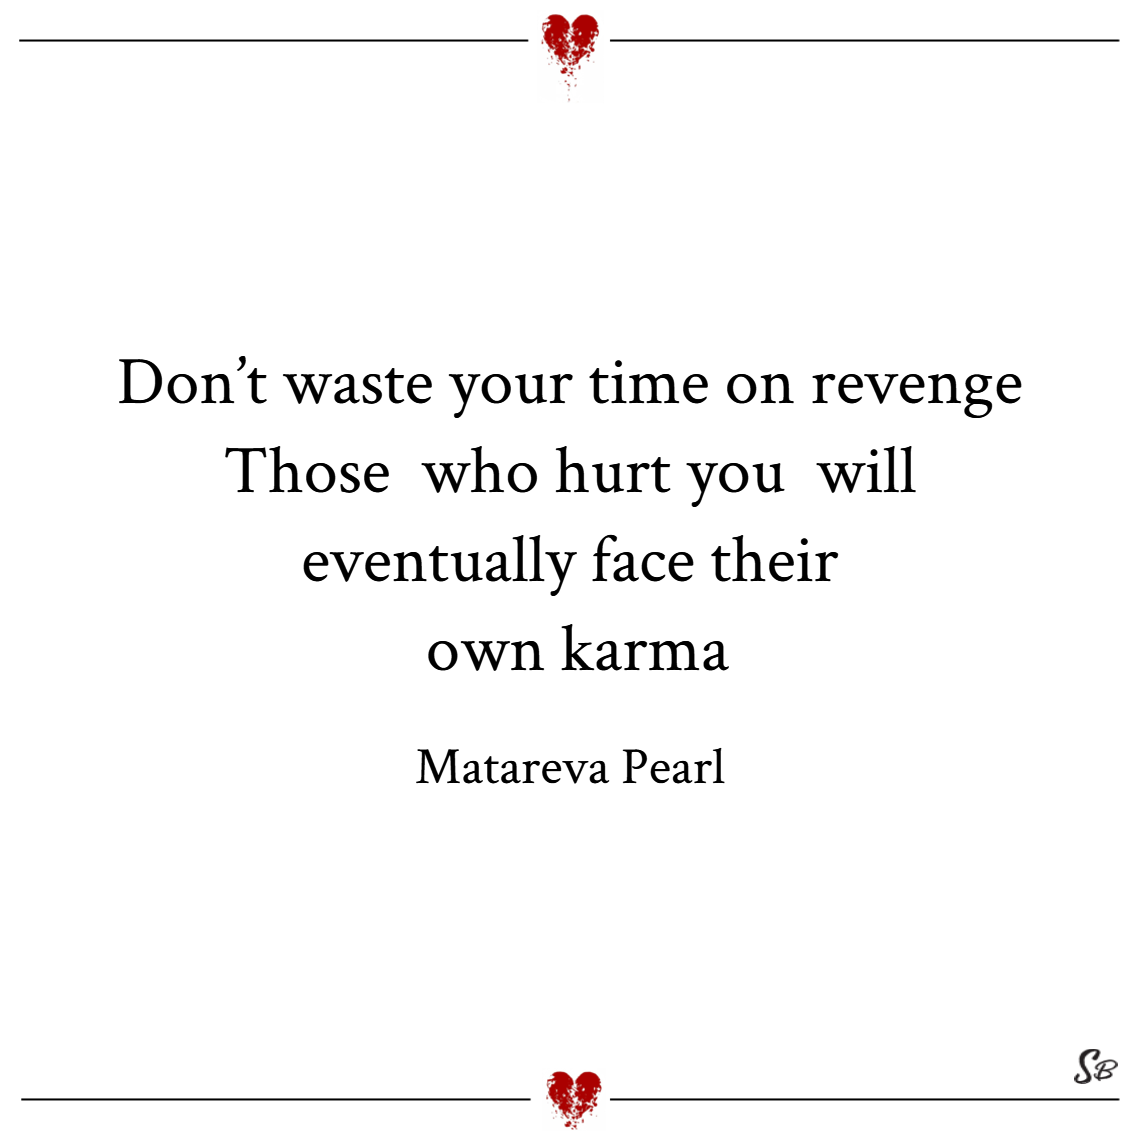 Don't waste your time on revenge. those who hurt you will eventually face their own karma. – matareva pearl